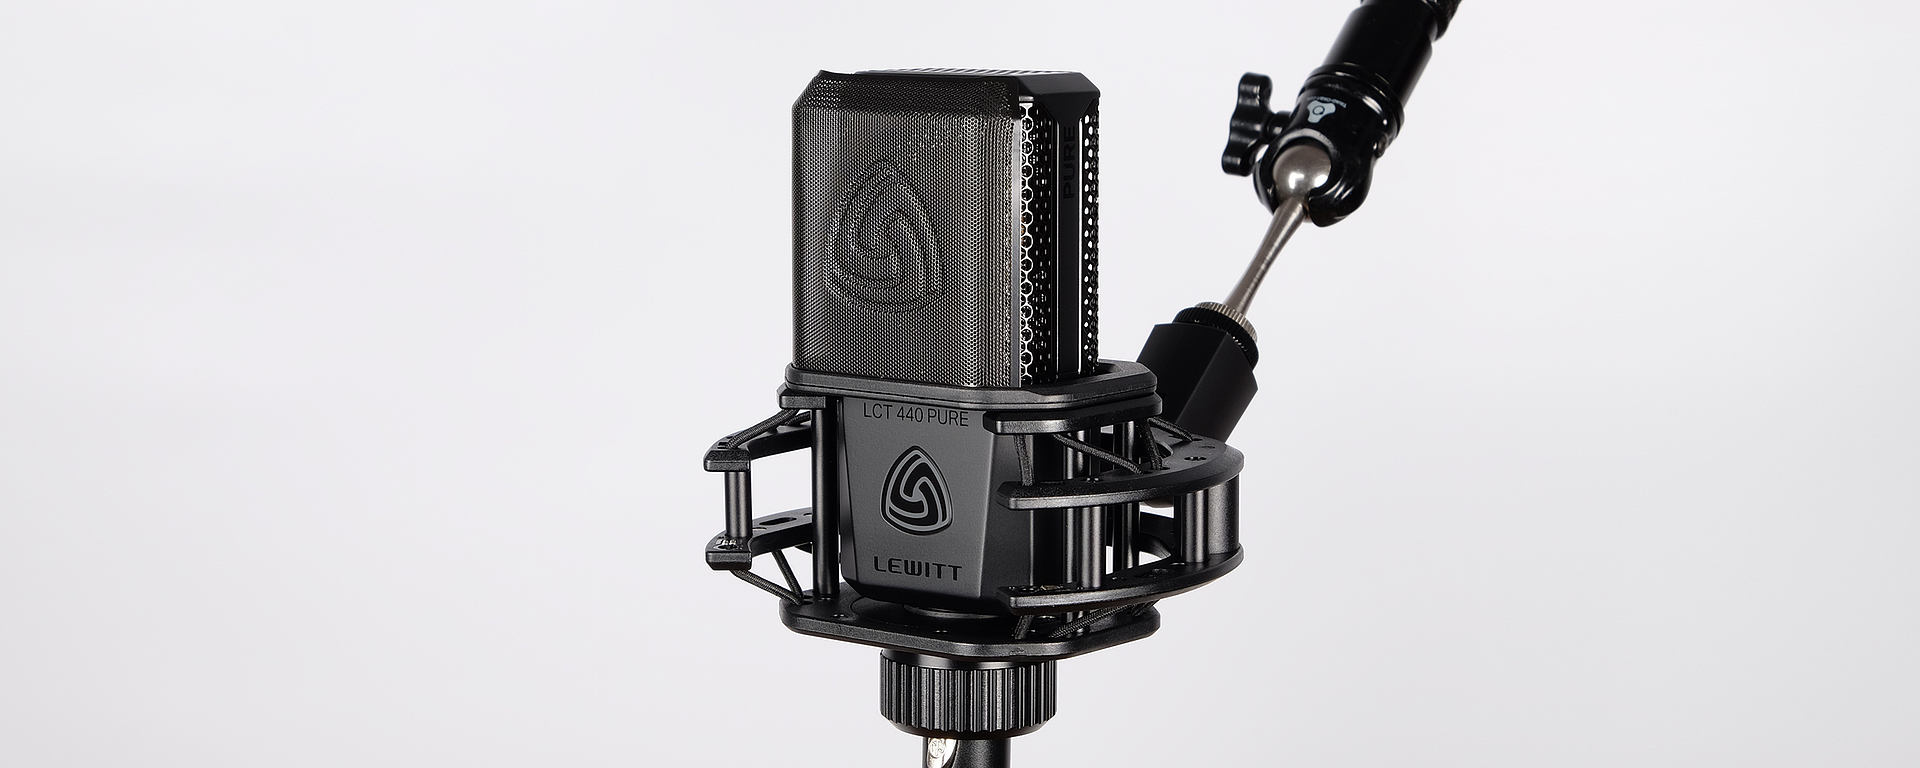 LCT 440 PURE SHOCK MOUNT